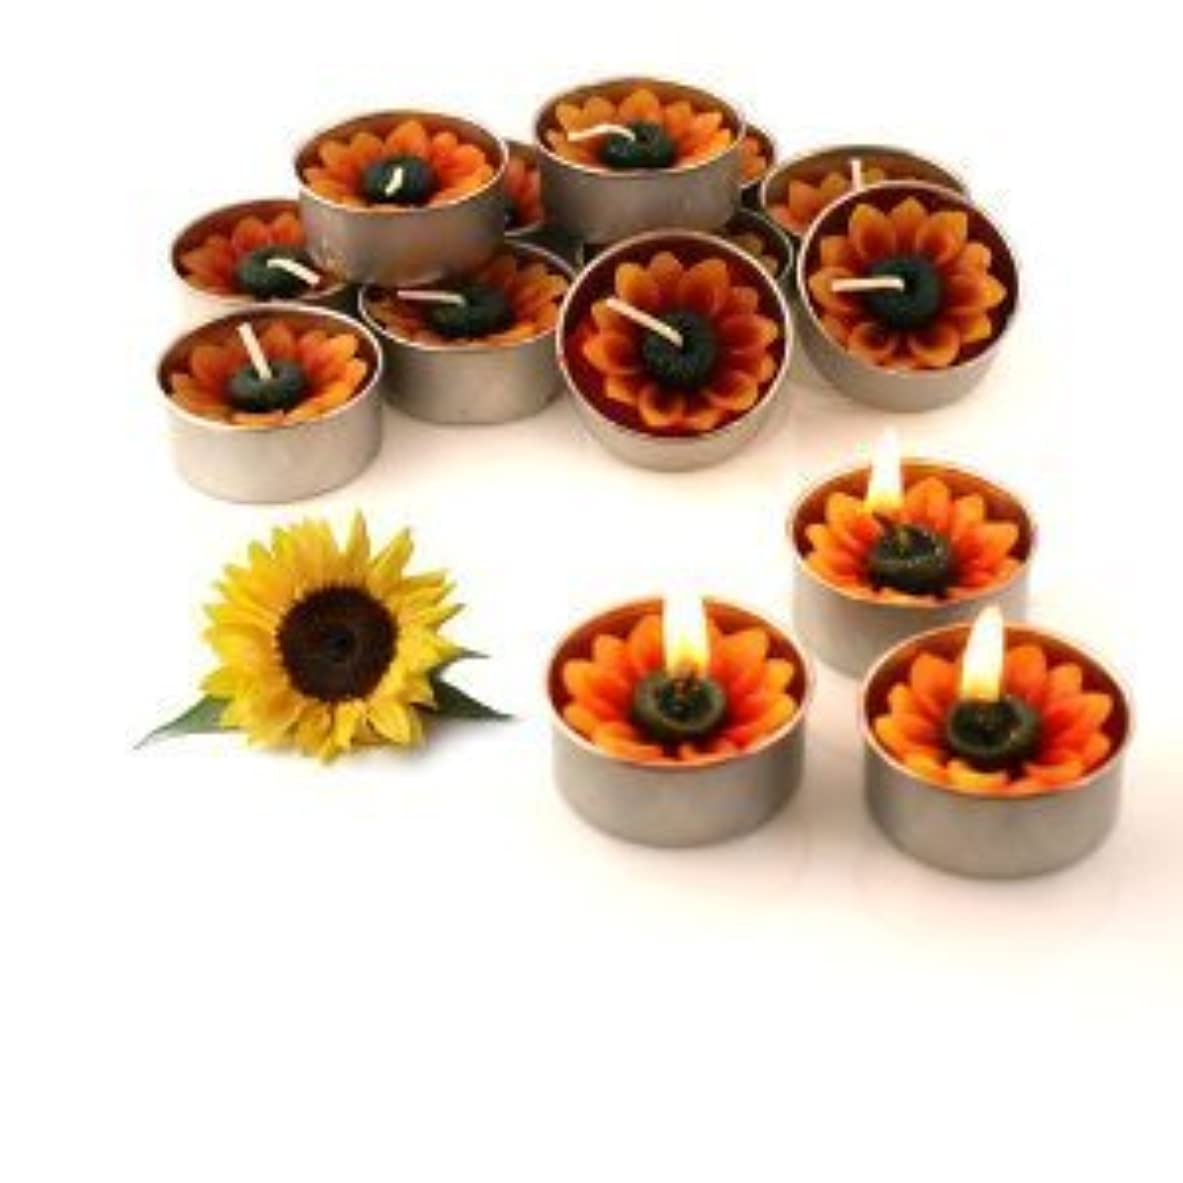 のど食用電卓Relax Spa Shop @ Sun Flower Candle in Tea Lights , Floating Candles, Scented Tea Lights ,Aromatherapy Relax (Sun Flower Candle in Tea Lights Pack of 10 Pcs.) by Relax Spa Shop